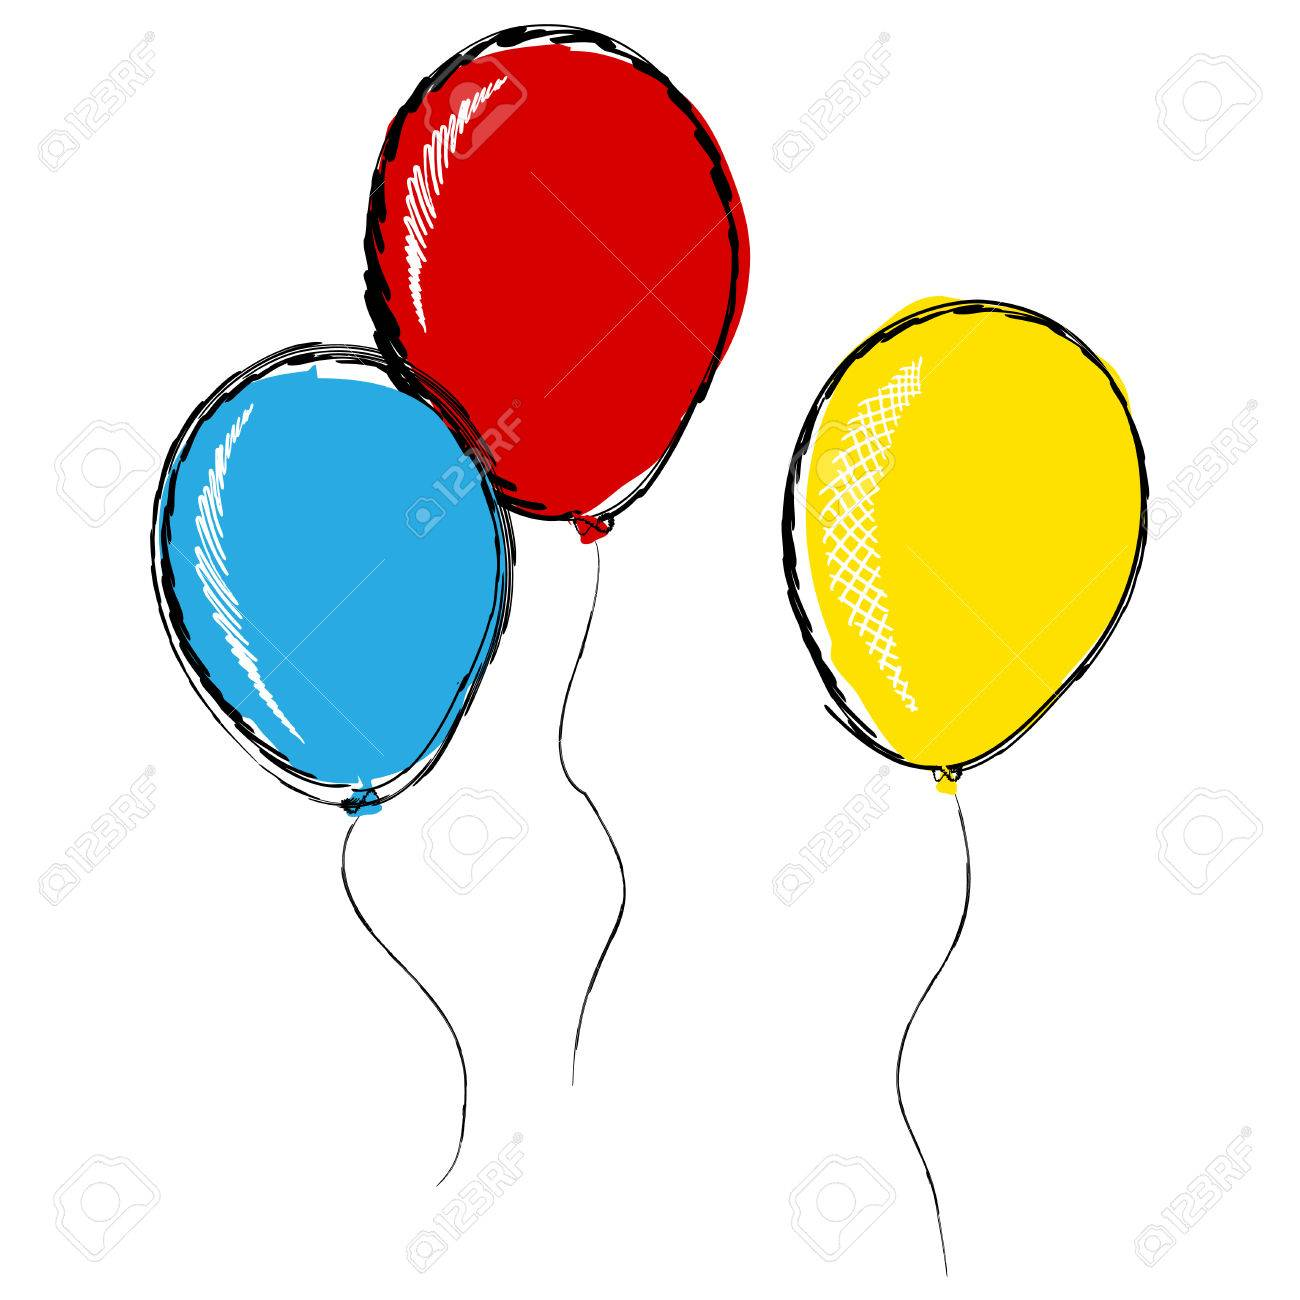 Three Inflatable Balloons In Pencil Sketch Style Isolated On